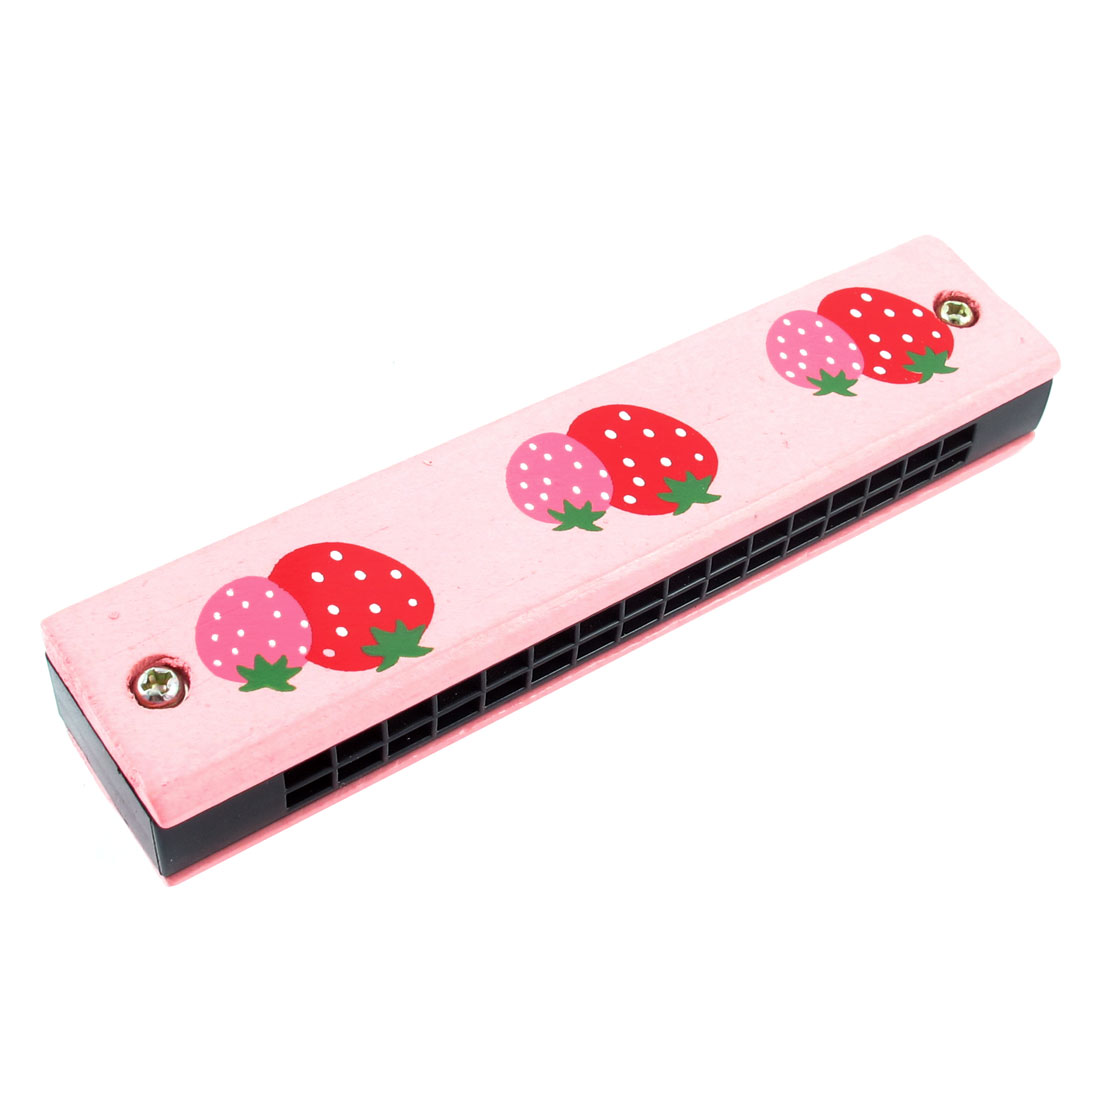 Two Blueberries Print Wood Dual Rows 32 Hole Harmonica Mouth Organ Pink